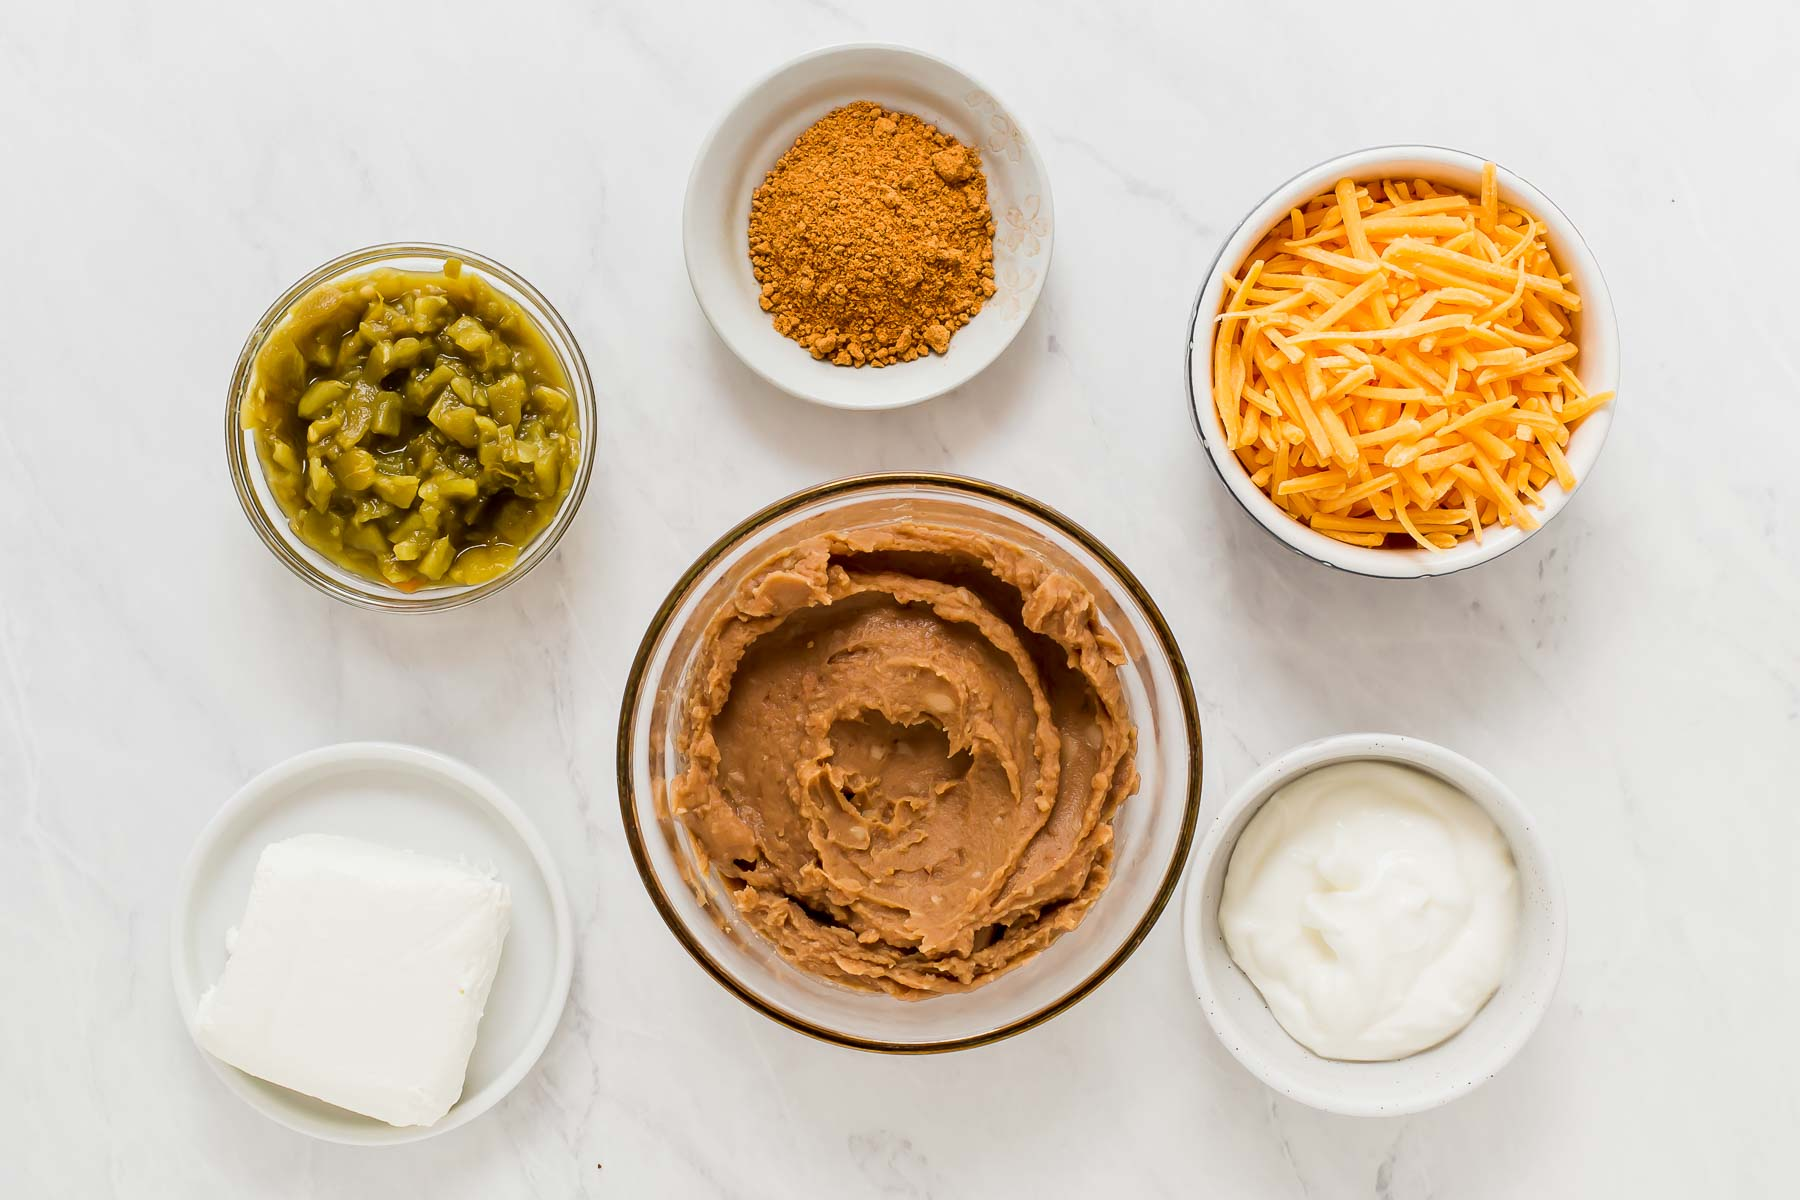 Bean dip ingredients in small bowls on white table.